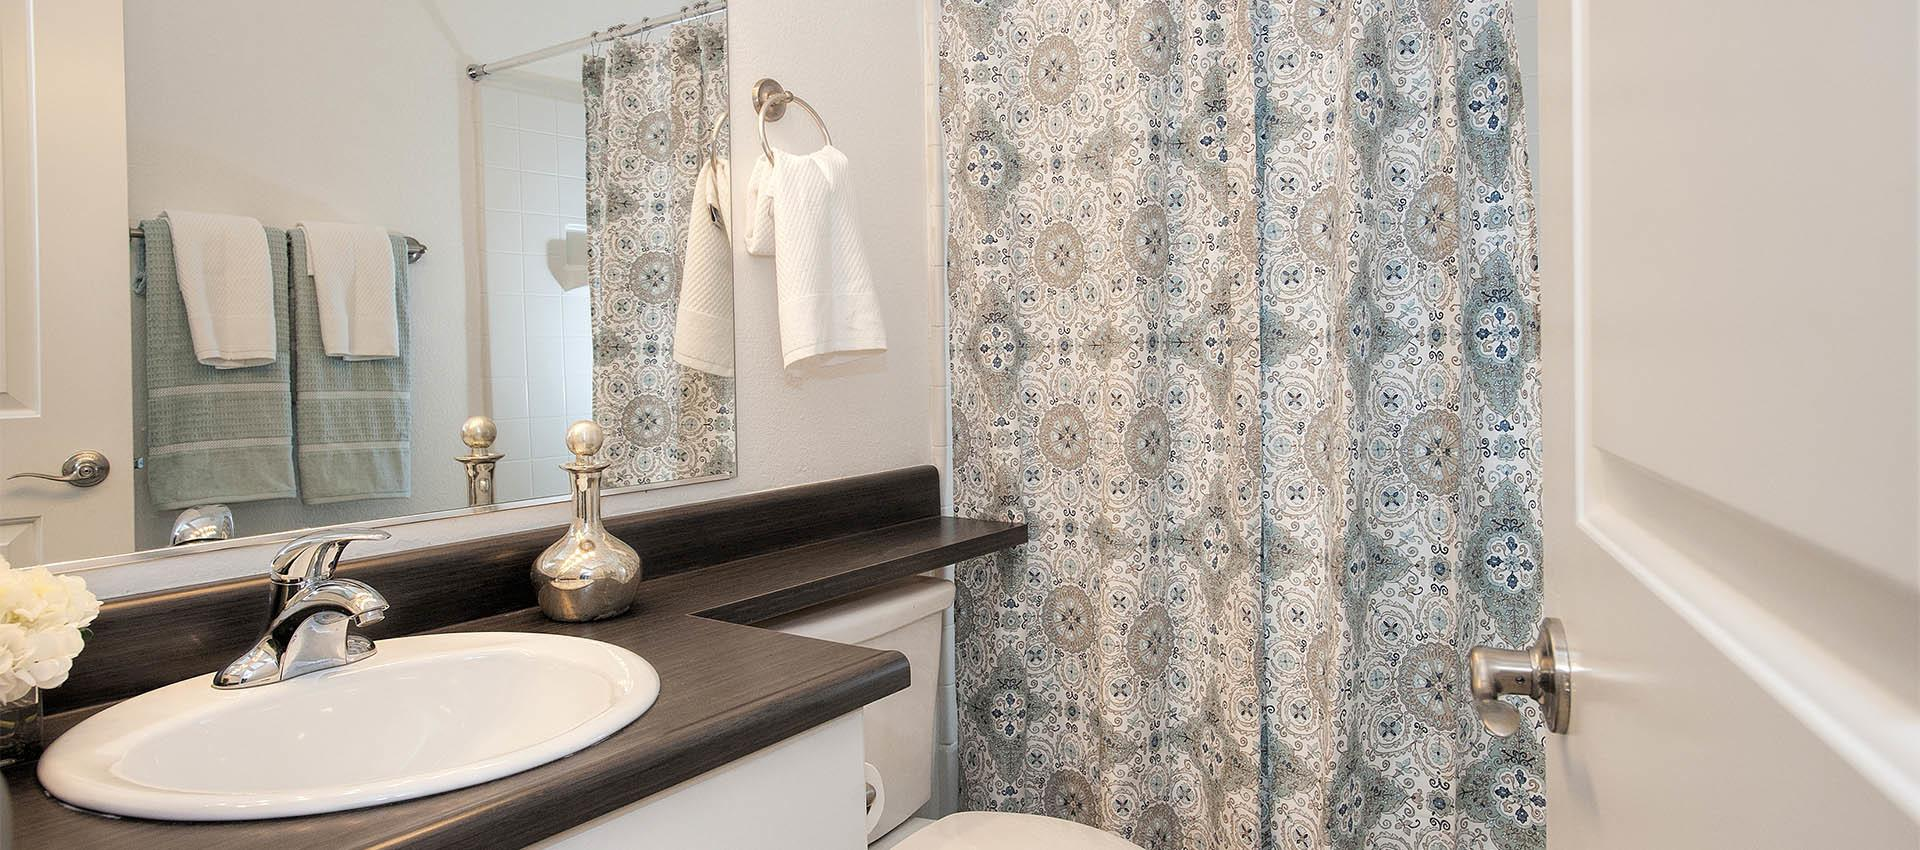 Bright Bathrooms at Mill Springs Park Apartment Homes in Livermore